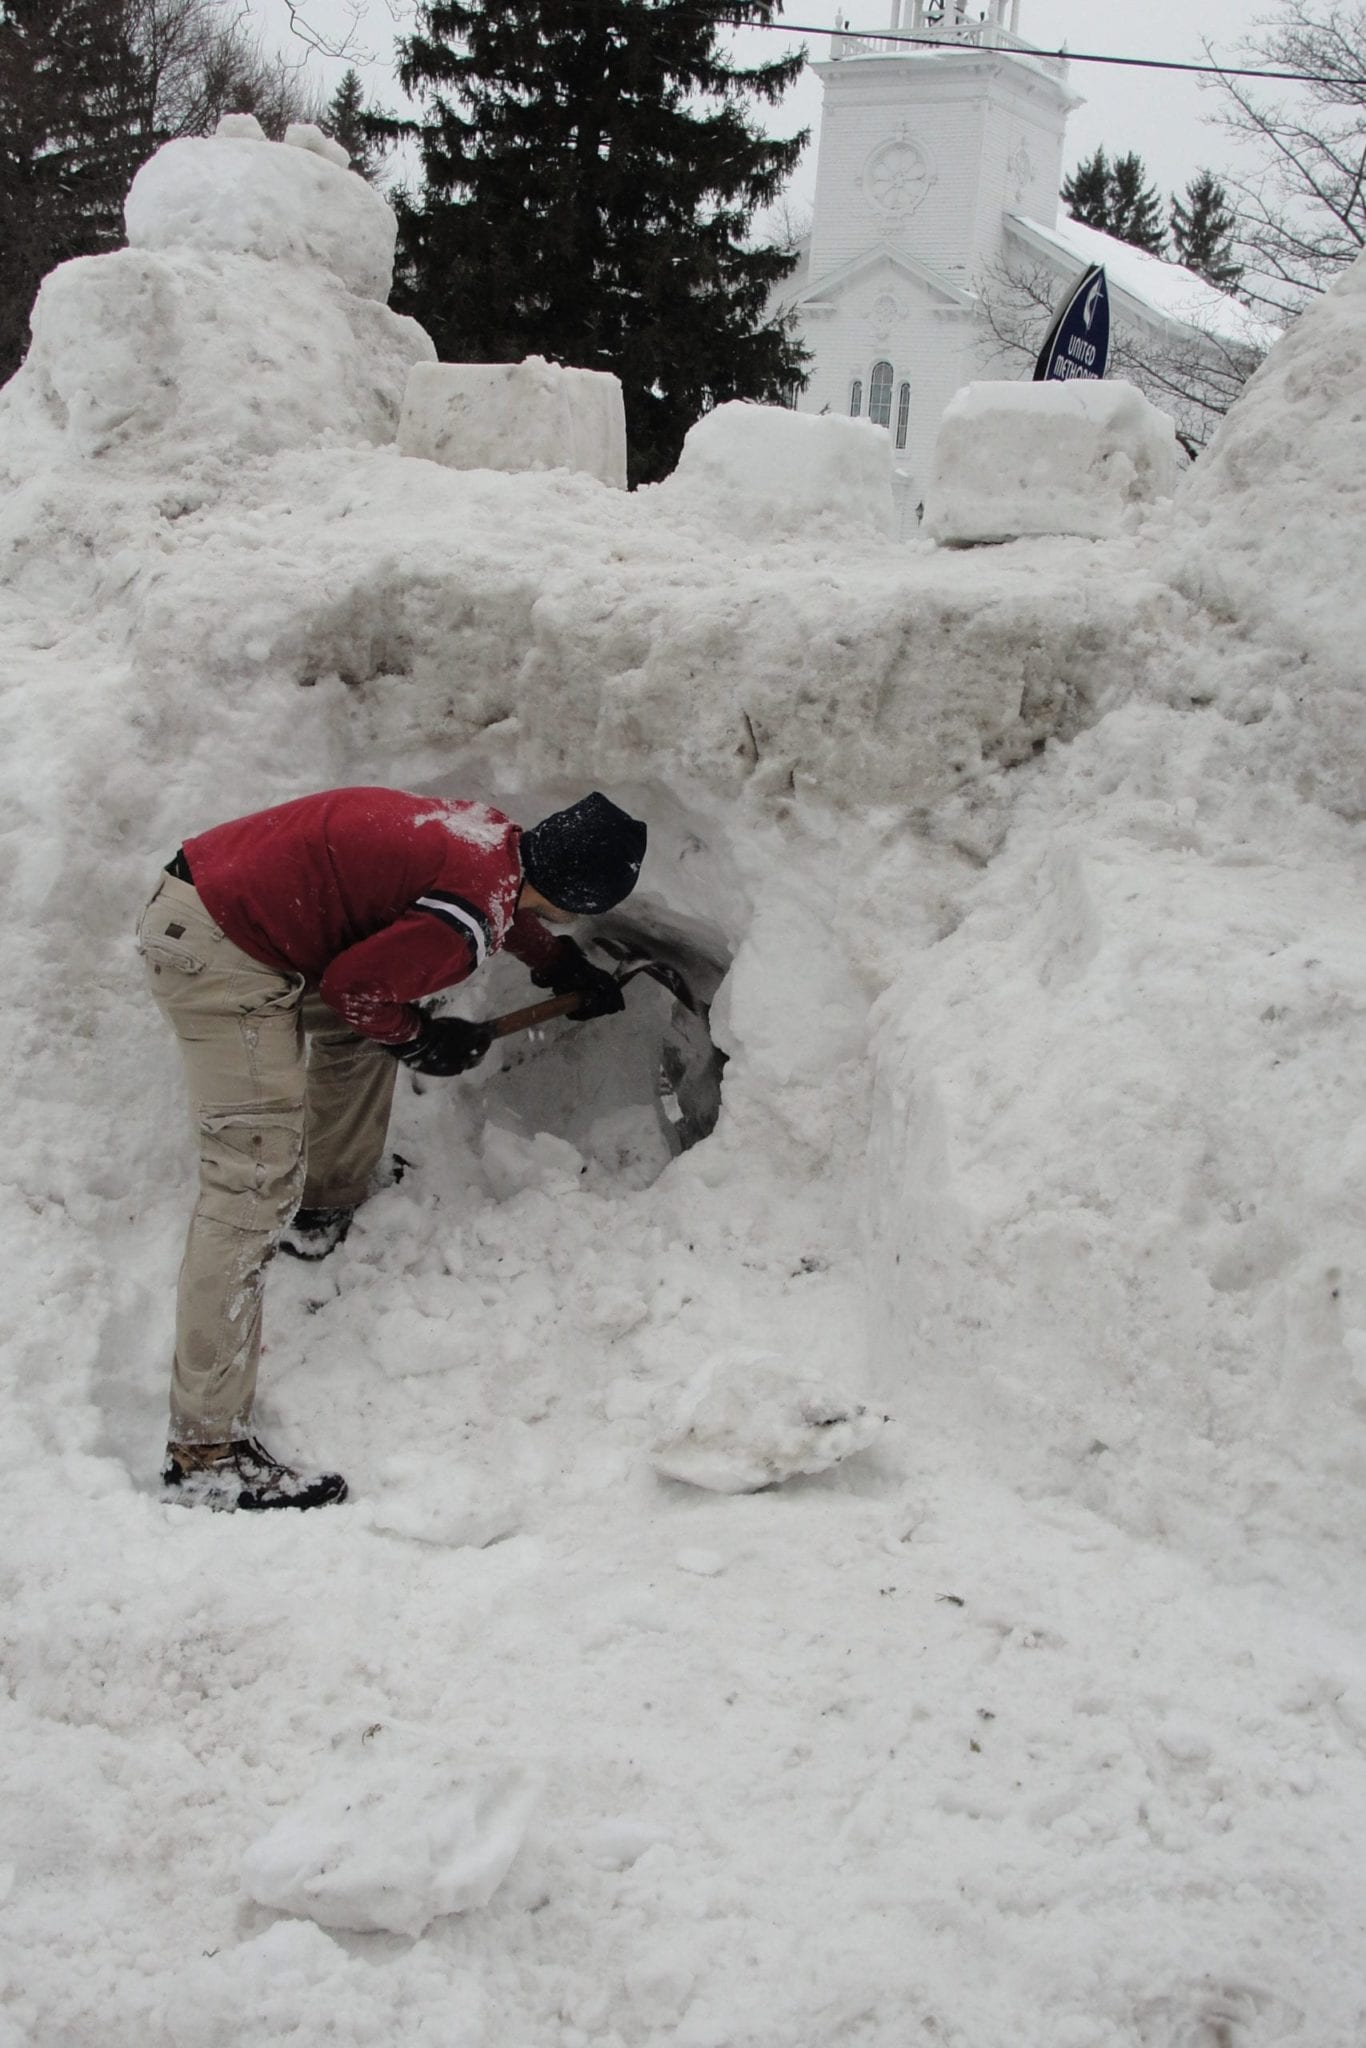 Village, town snow budgets in good standing